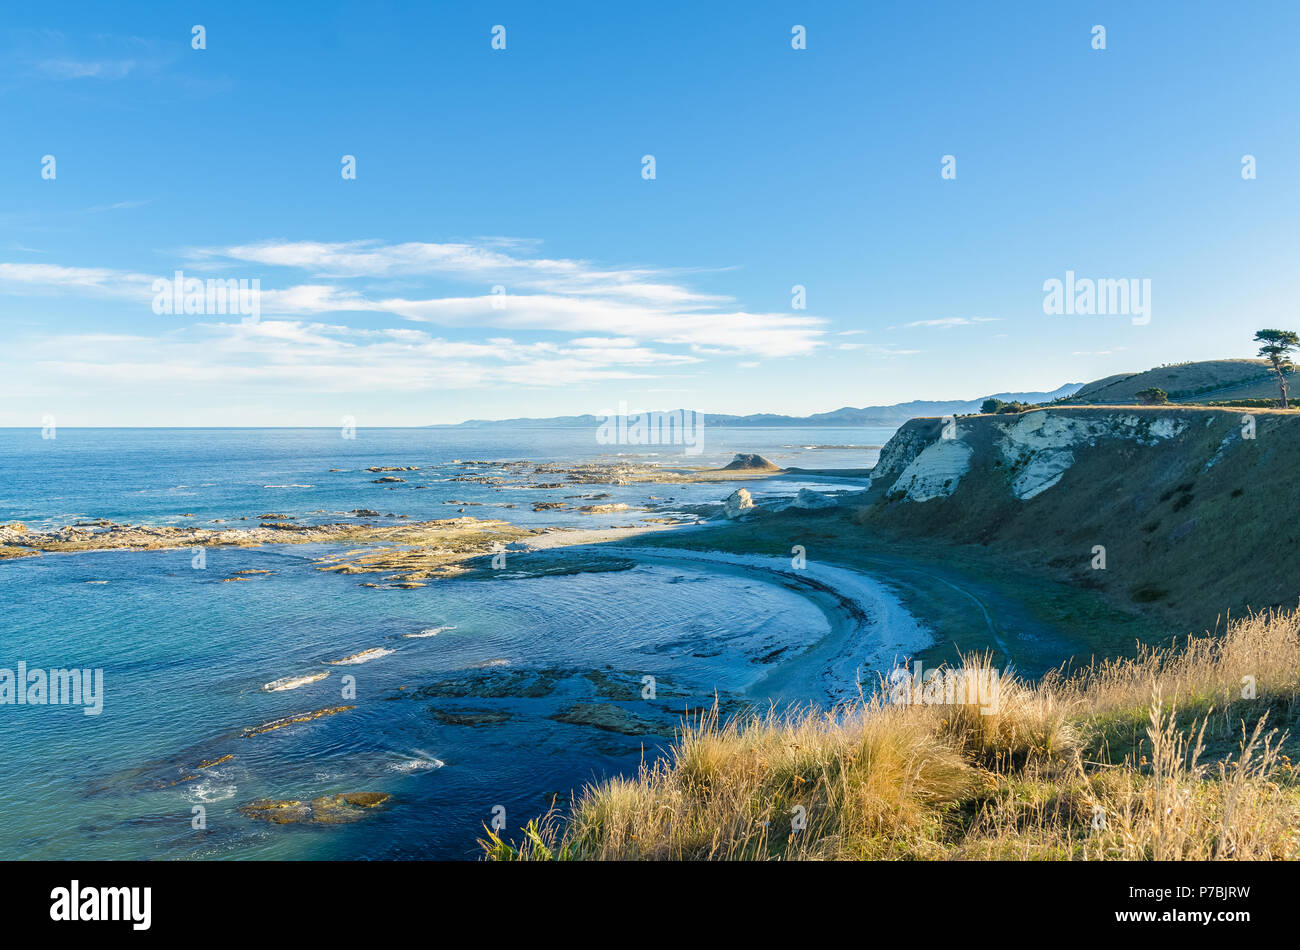 Beautiful landscape view from the Point Kean Viewpoint, Kaikoura New Zealand - Stock Image